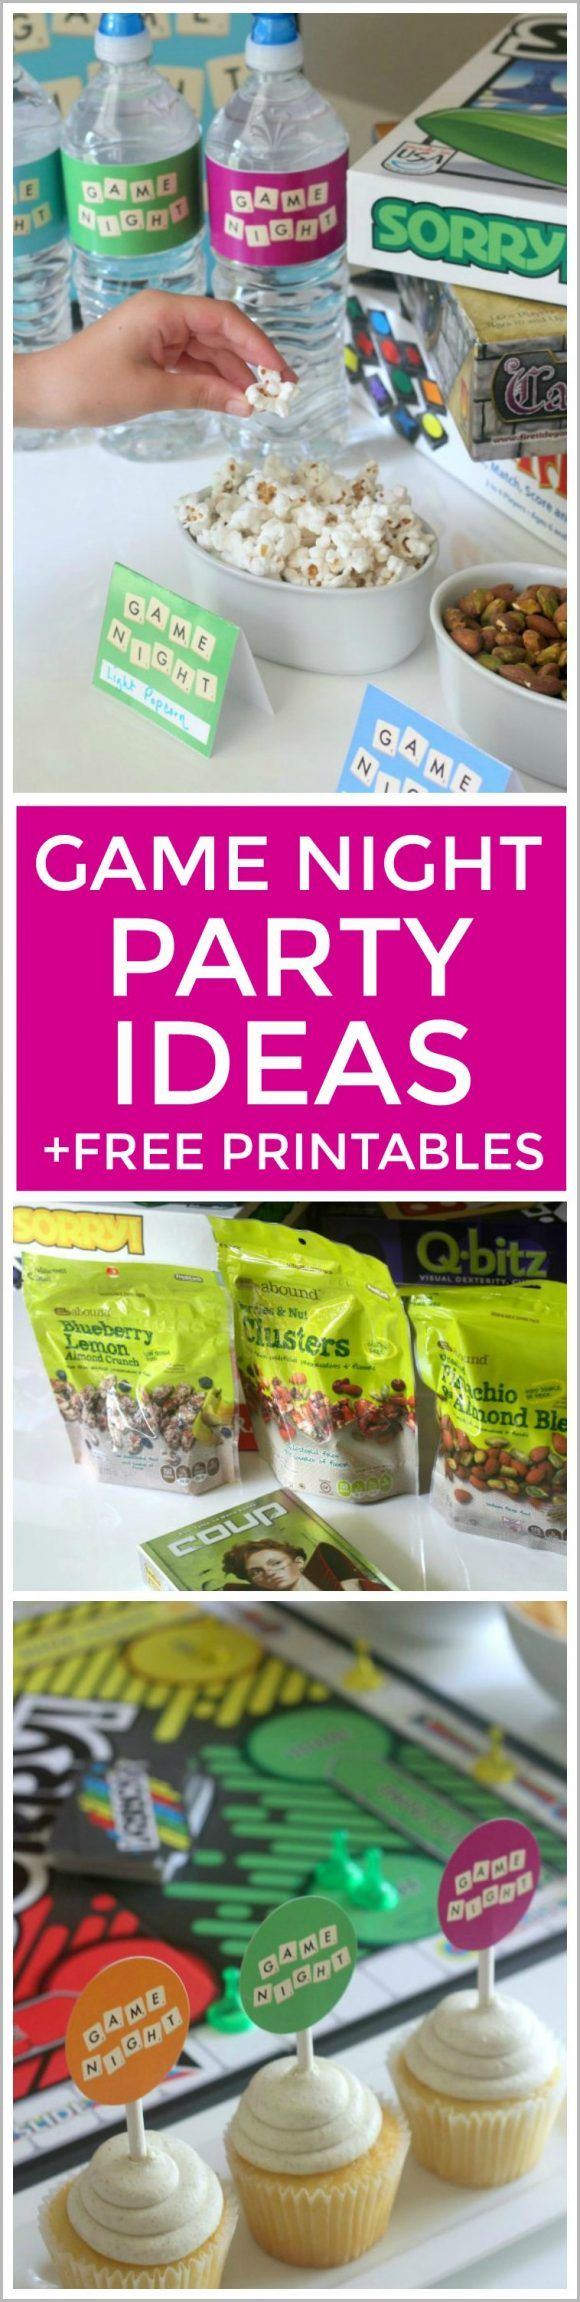 How To Throw A Game Night Party for your friends or family. Works great as a kids party or adult party. Plus we have a whole set of free game night printables to use to decorate! | CatchMyParty.com